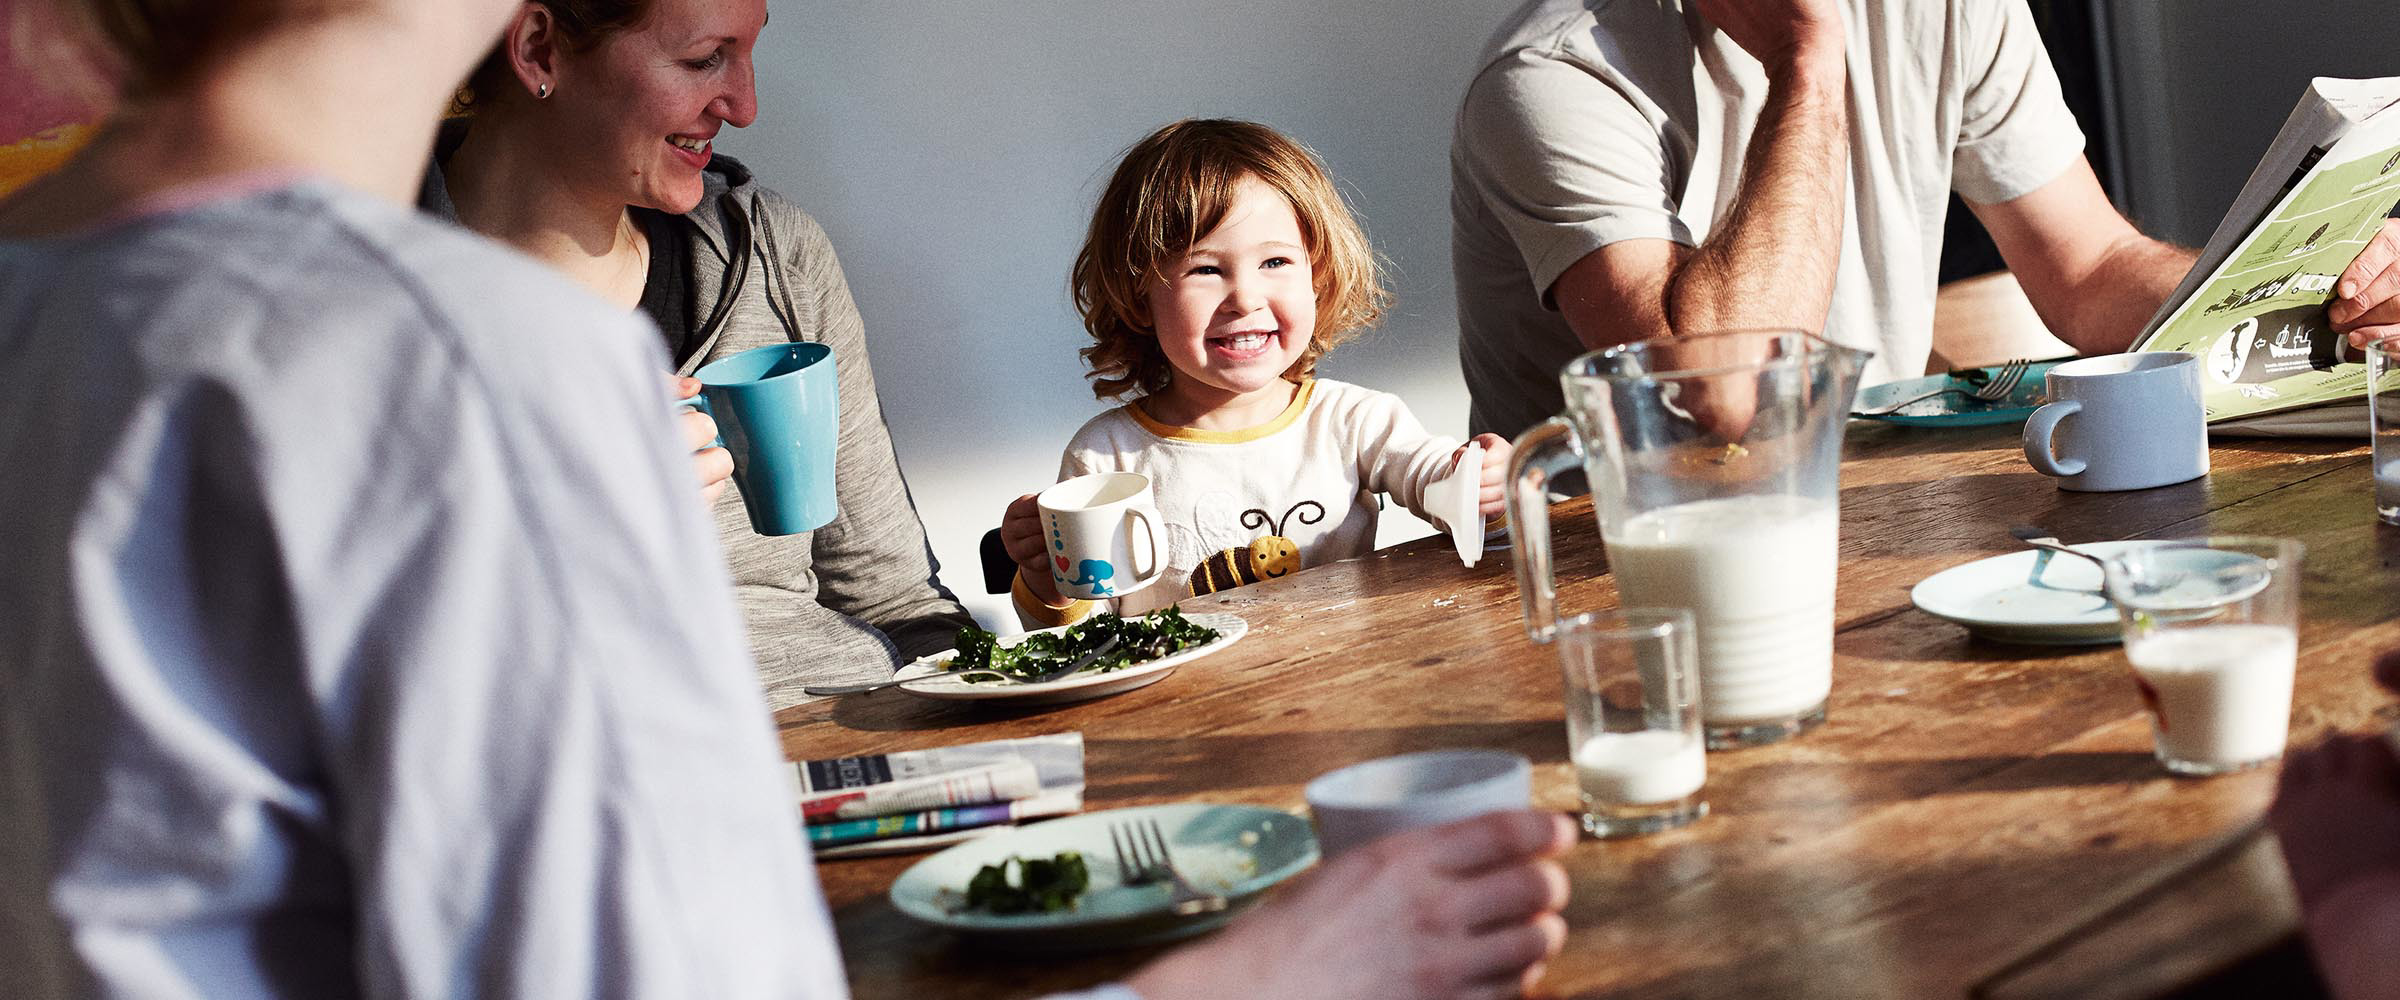 A young child smiling at the dinner table with their family